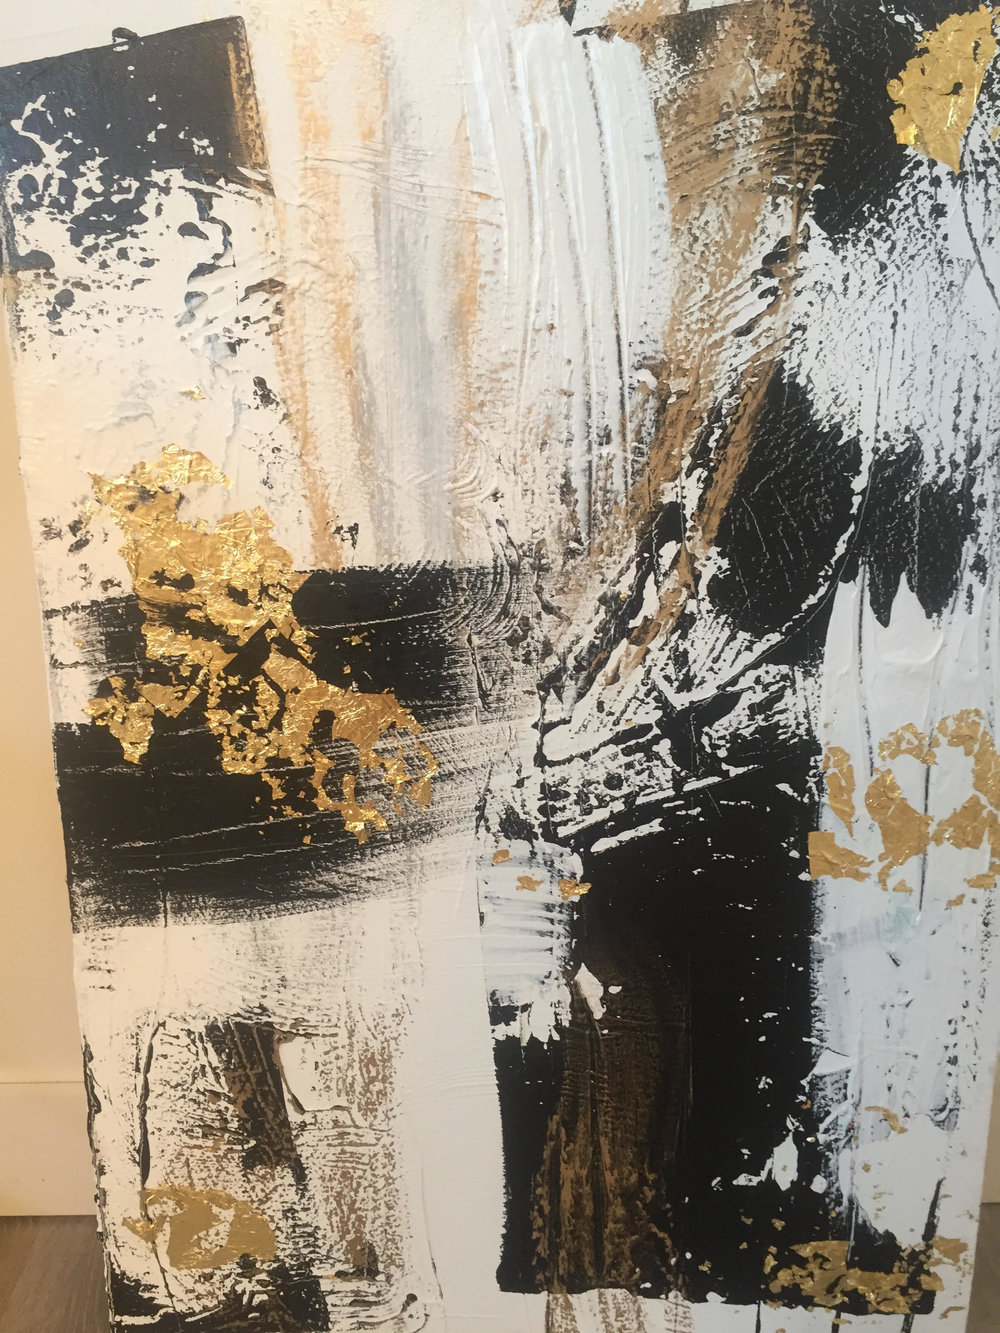 paris series no. 2 / acrylic on canvas / 48 in. x 36 in.